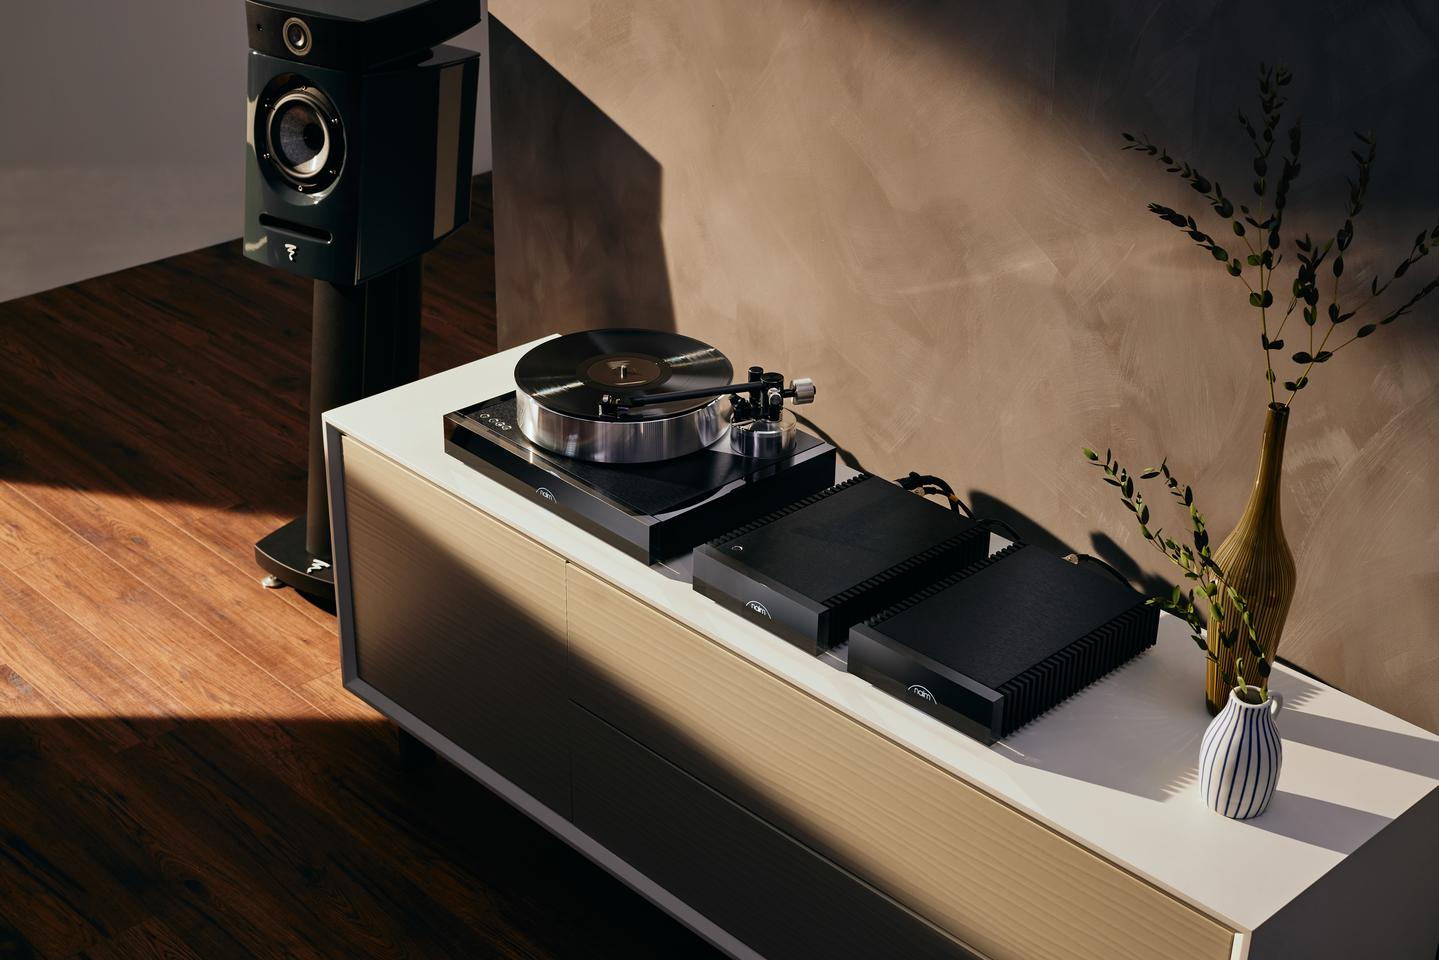 The Solstice Special Edition comprises Naim's first turntable, including a new tonearm and cartridge, a phono stage, a power supply, and a book with a vinyl record